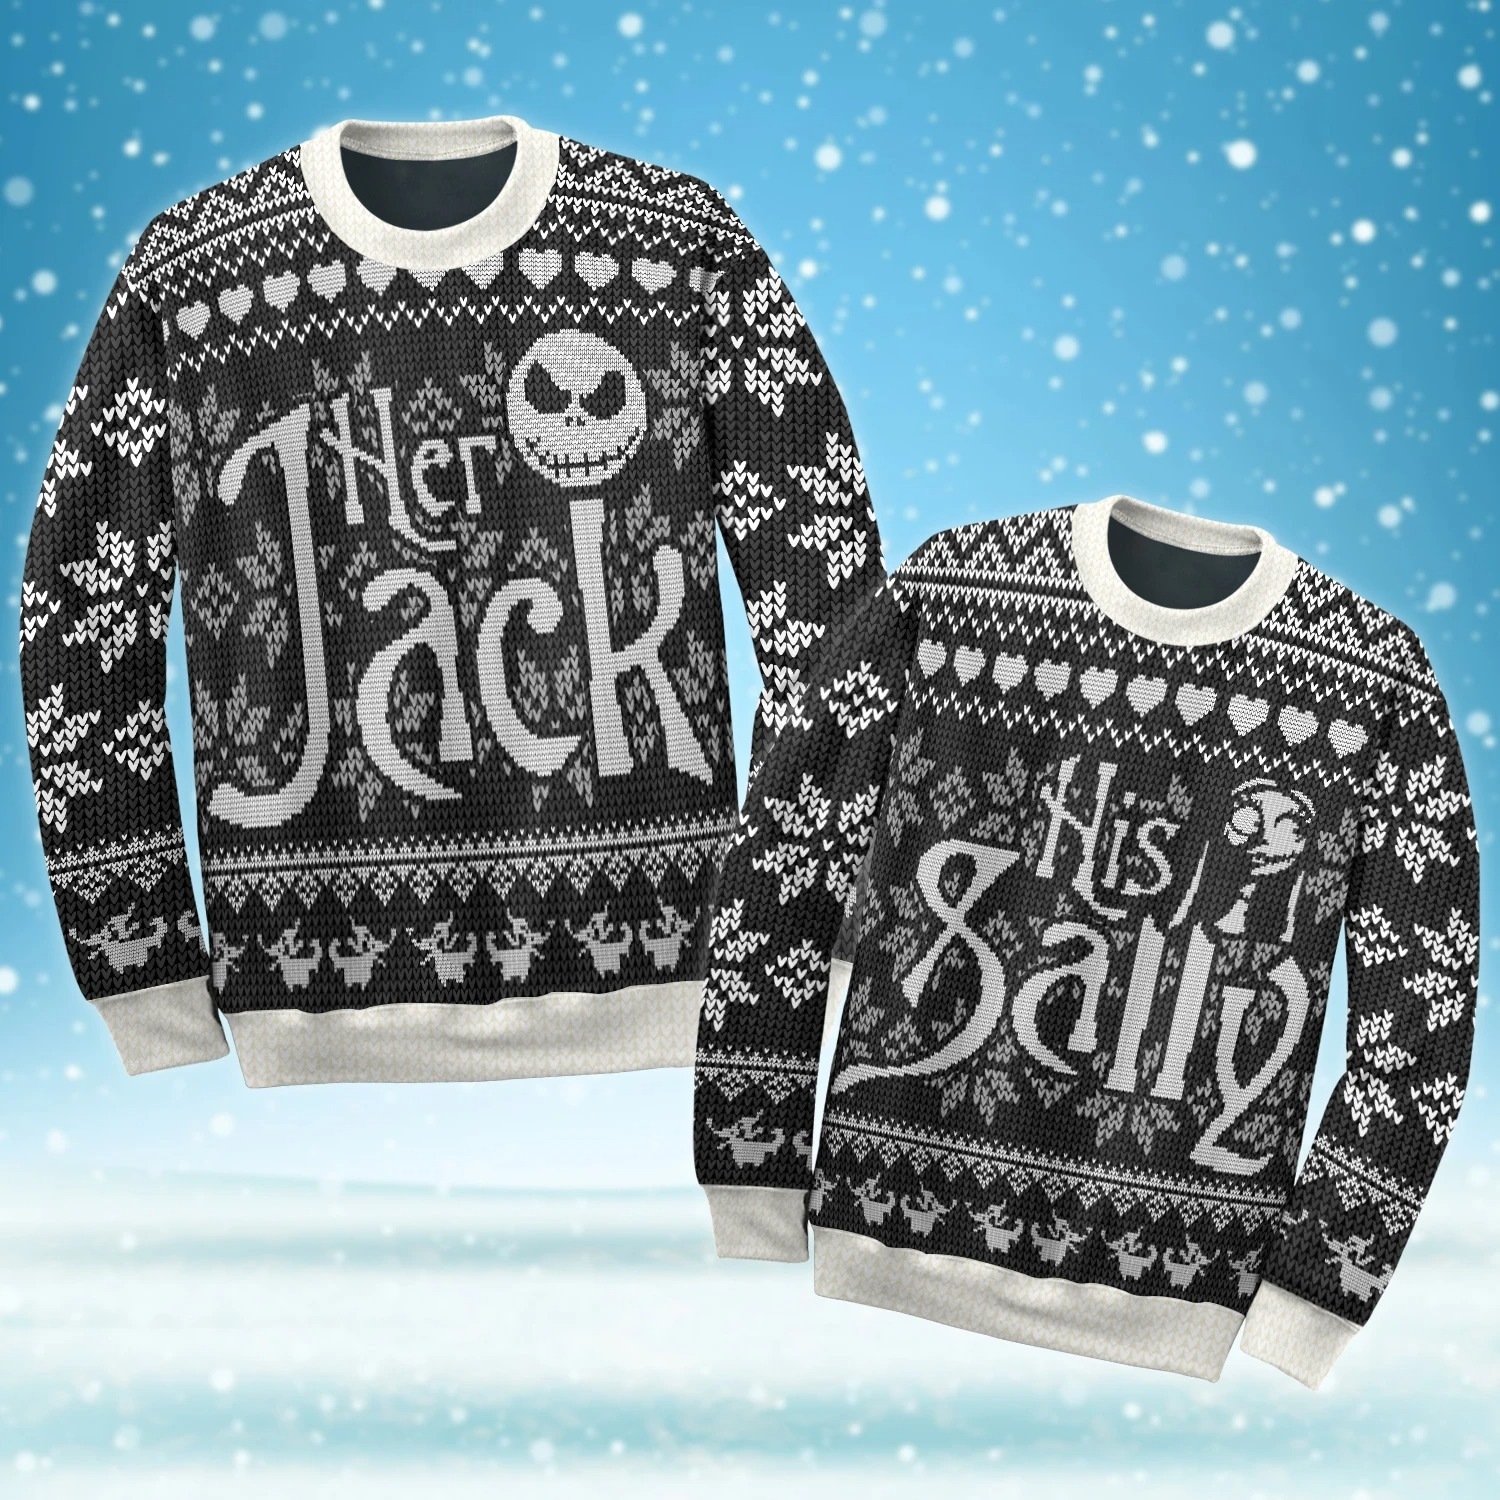 Her Jack And His Sally Ugly Christmas Sweater - Couple Sweater